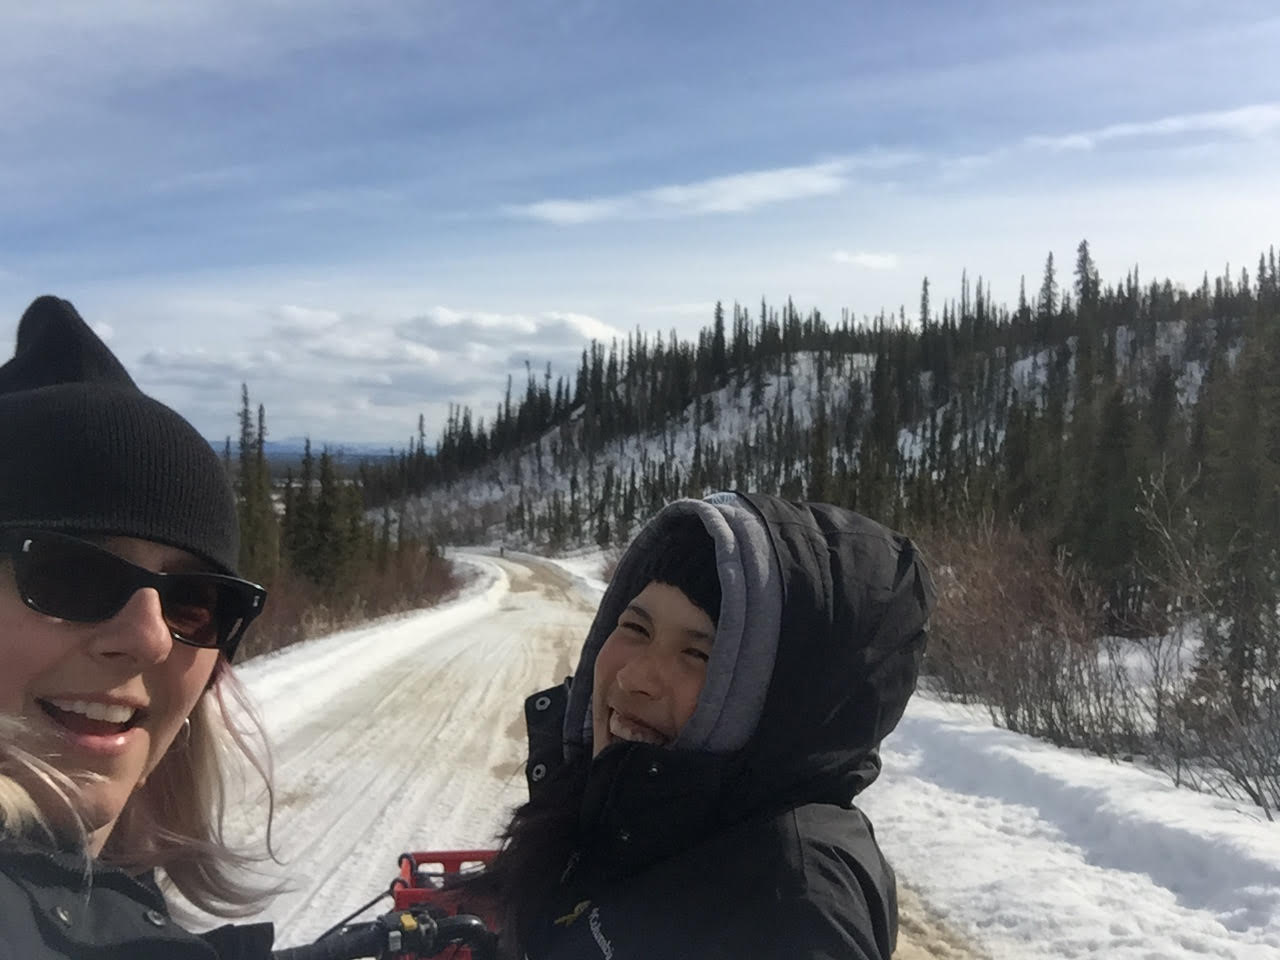 Kayleen and Lisa on the 4x4. (Desmond was filming their drive down the road.)